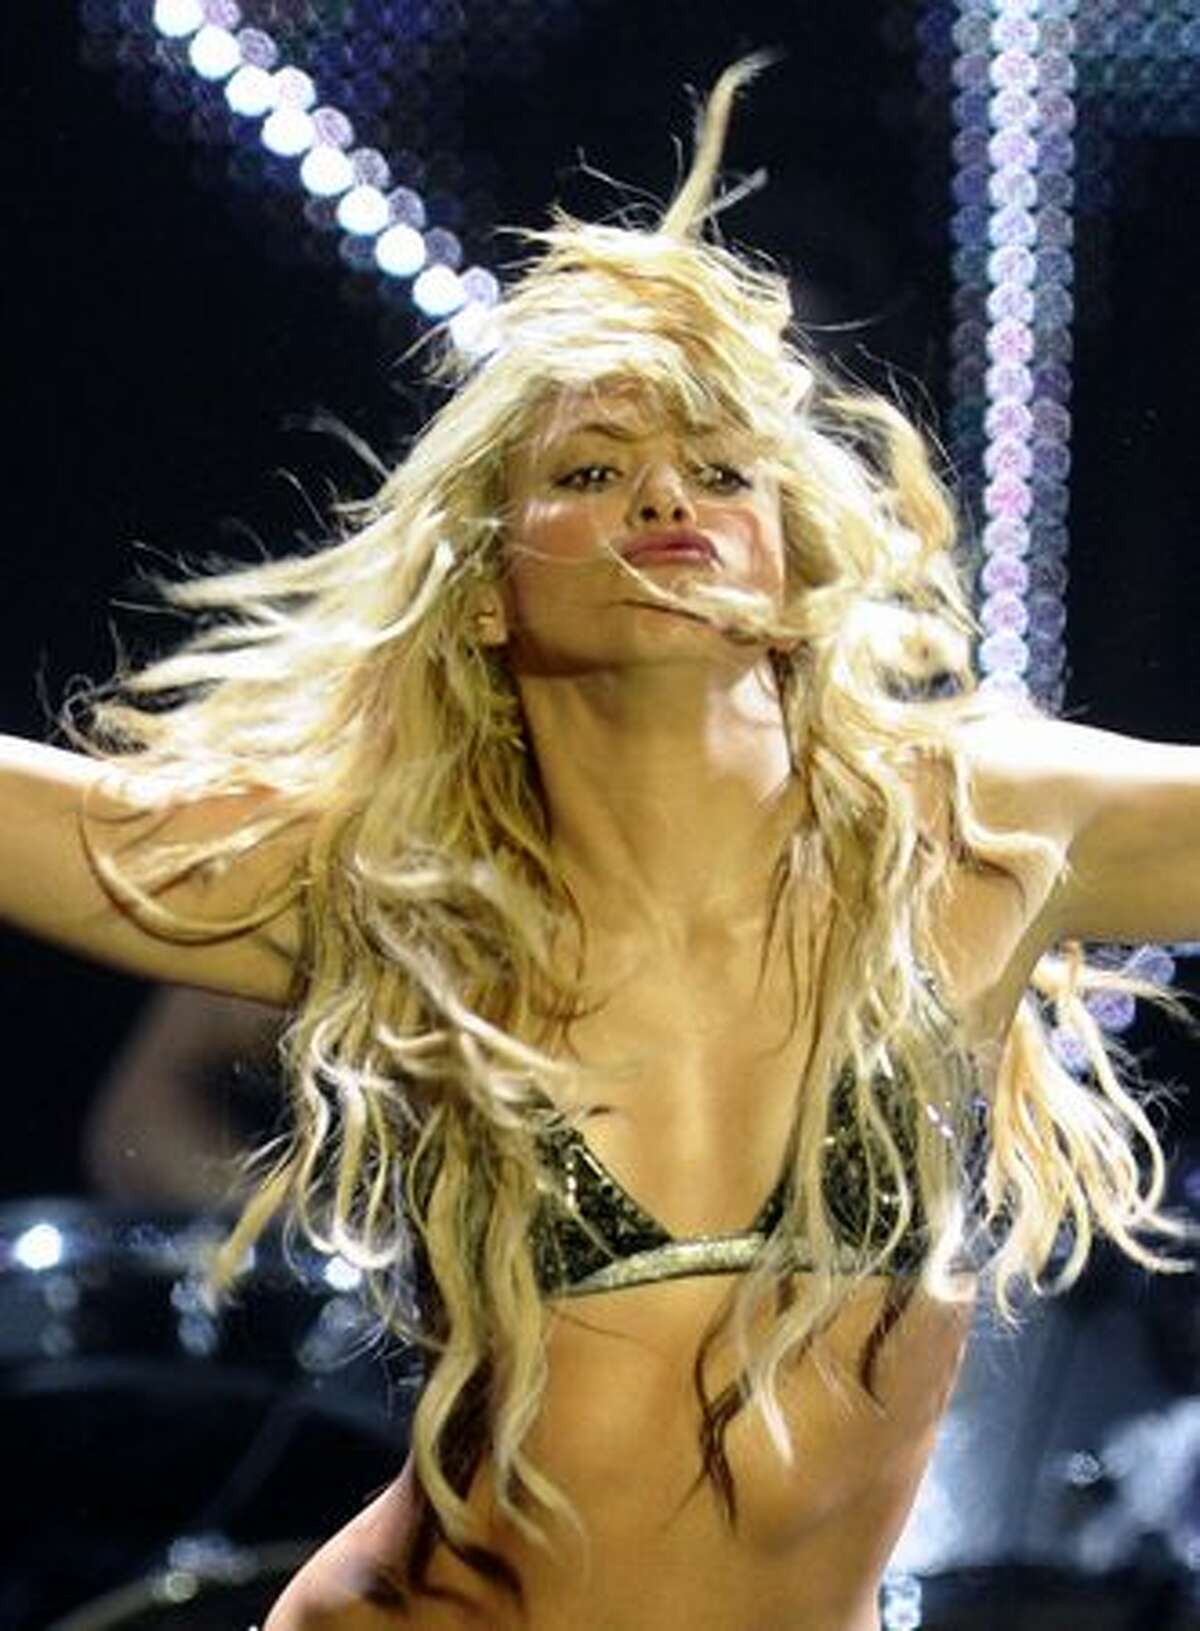 Colombian singer Shakira performs during the 2010 European MTV Awards at the Caja Magica in Madrid.